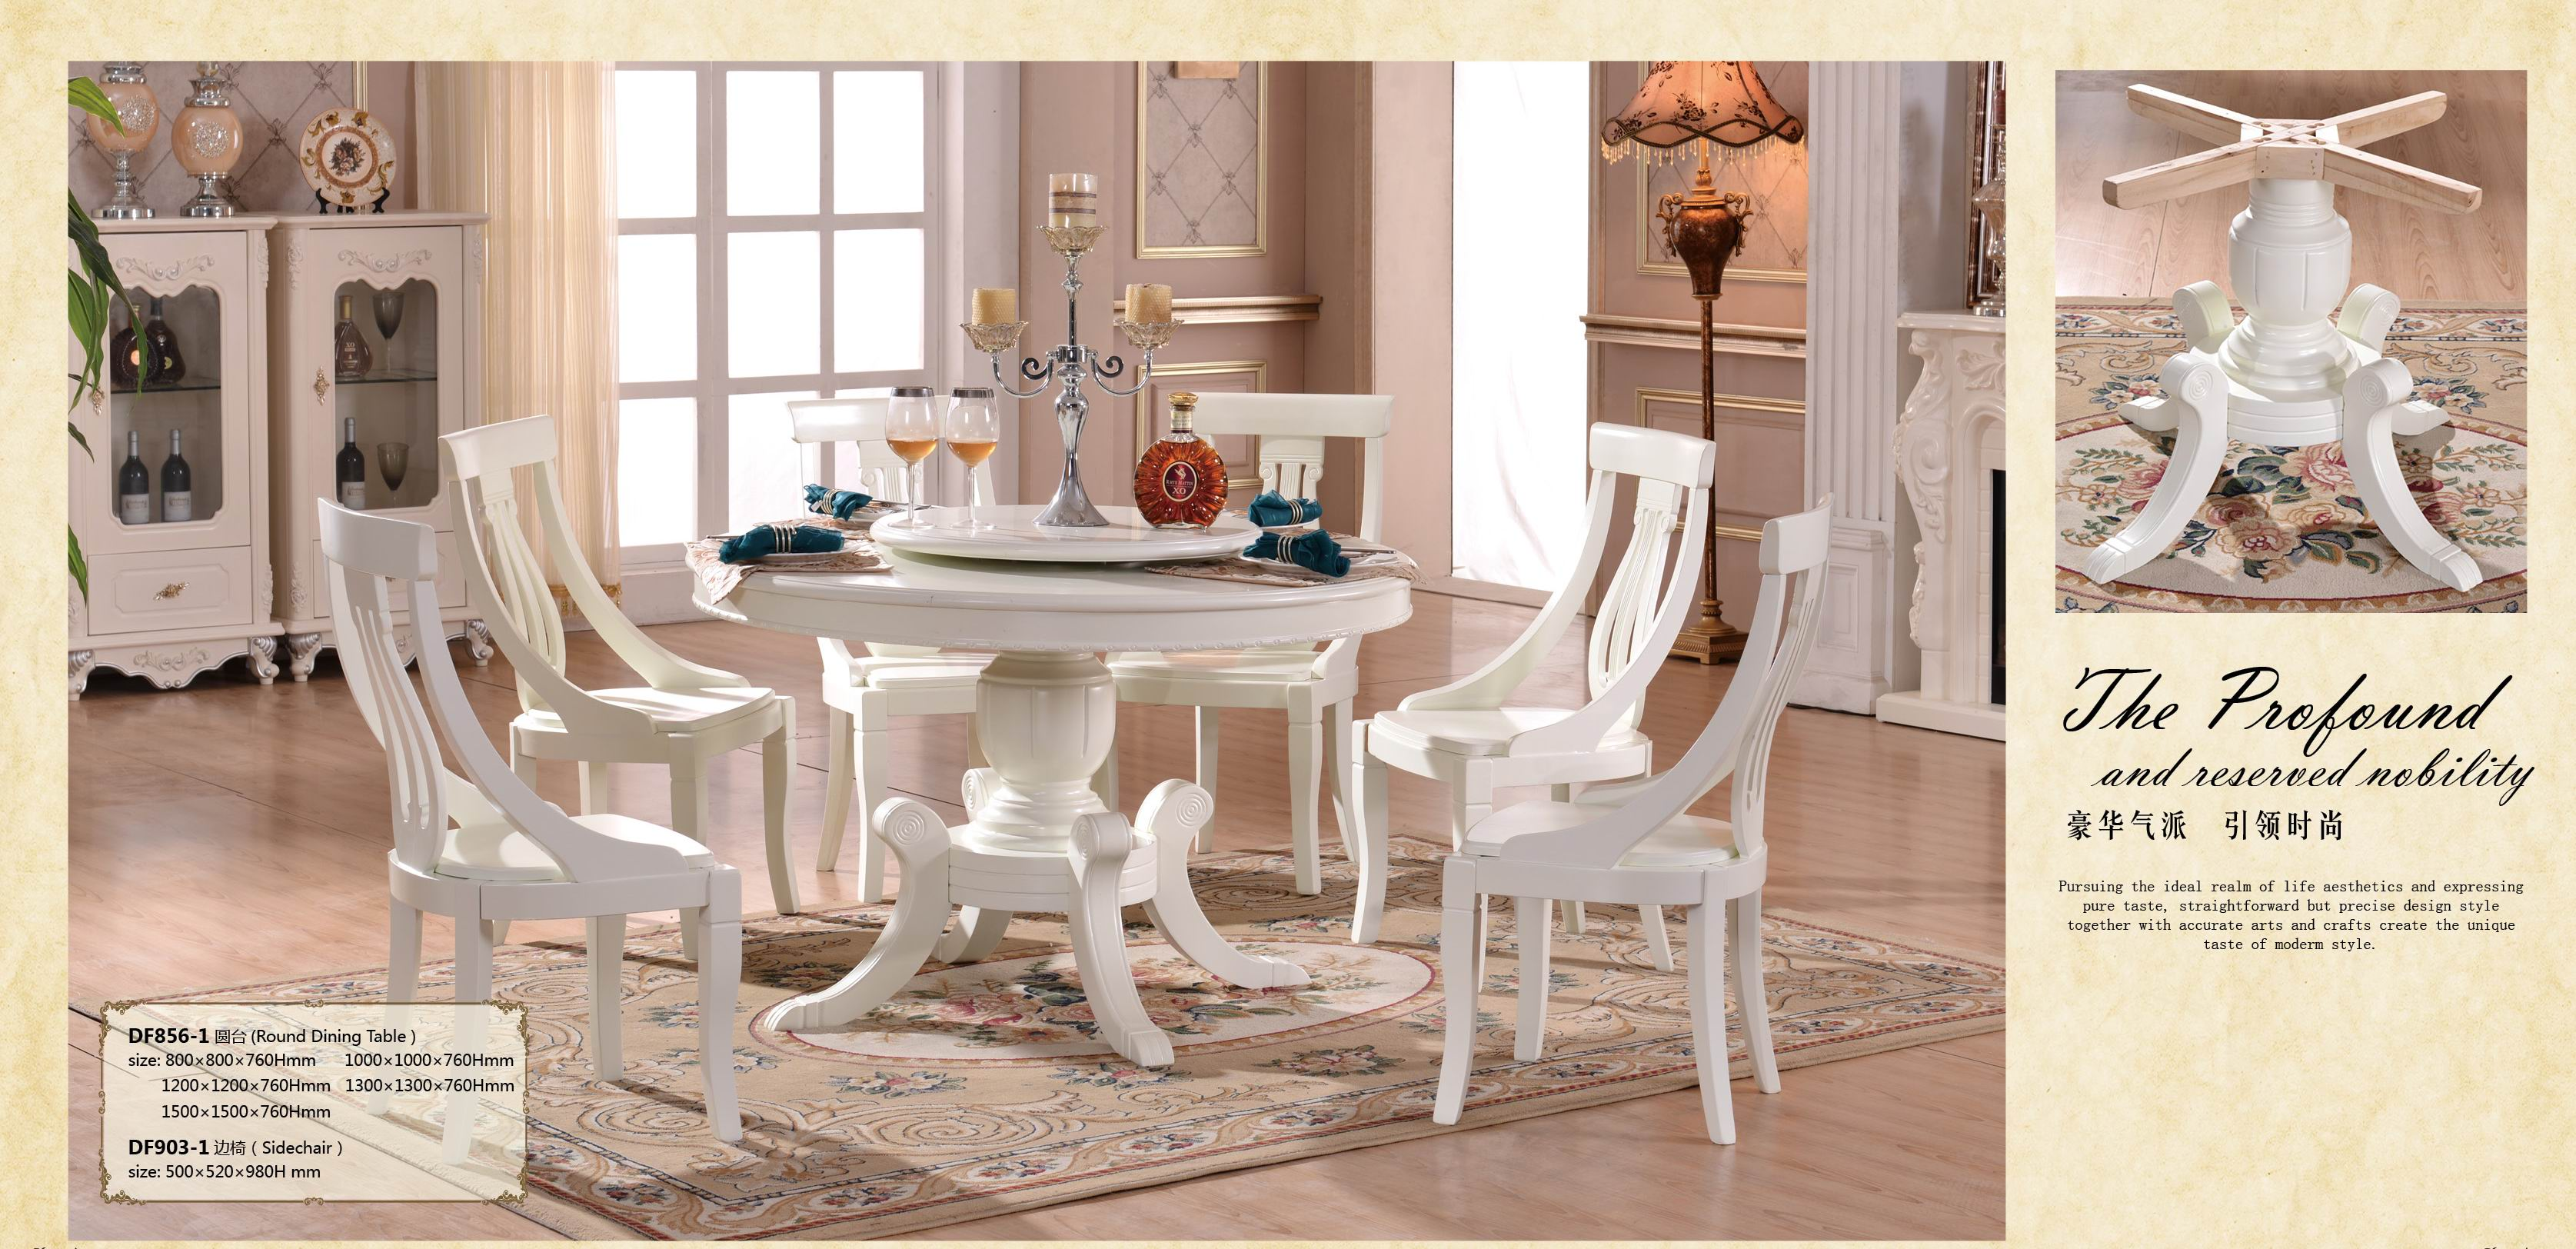 Modern round dining table 856 white color.jpg